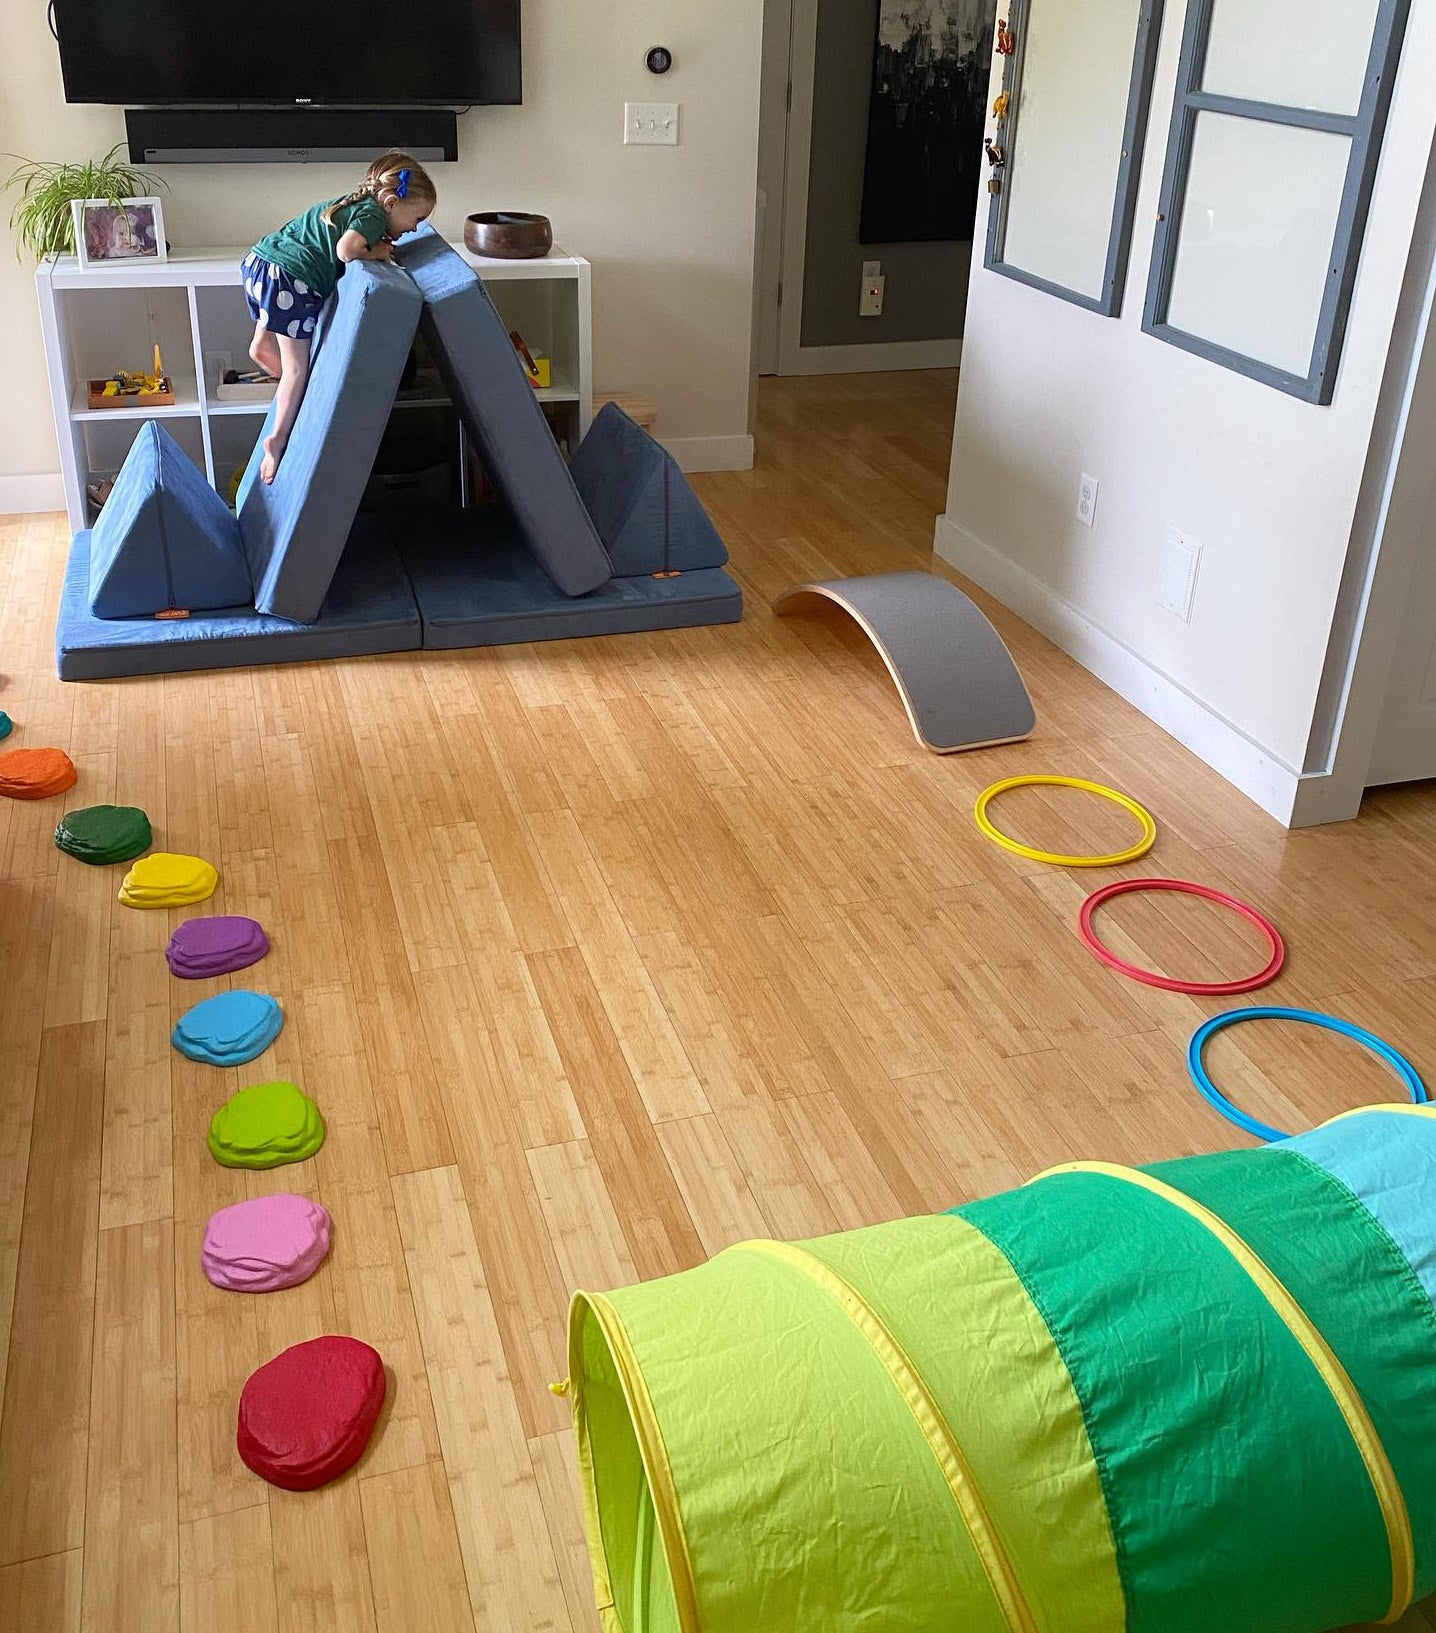 Child climbing up a Nugget base folded in two like a mountain peak, with a tunnel, stepping stones, and hula hoops set up around as an obstacle course